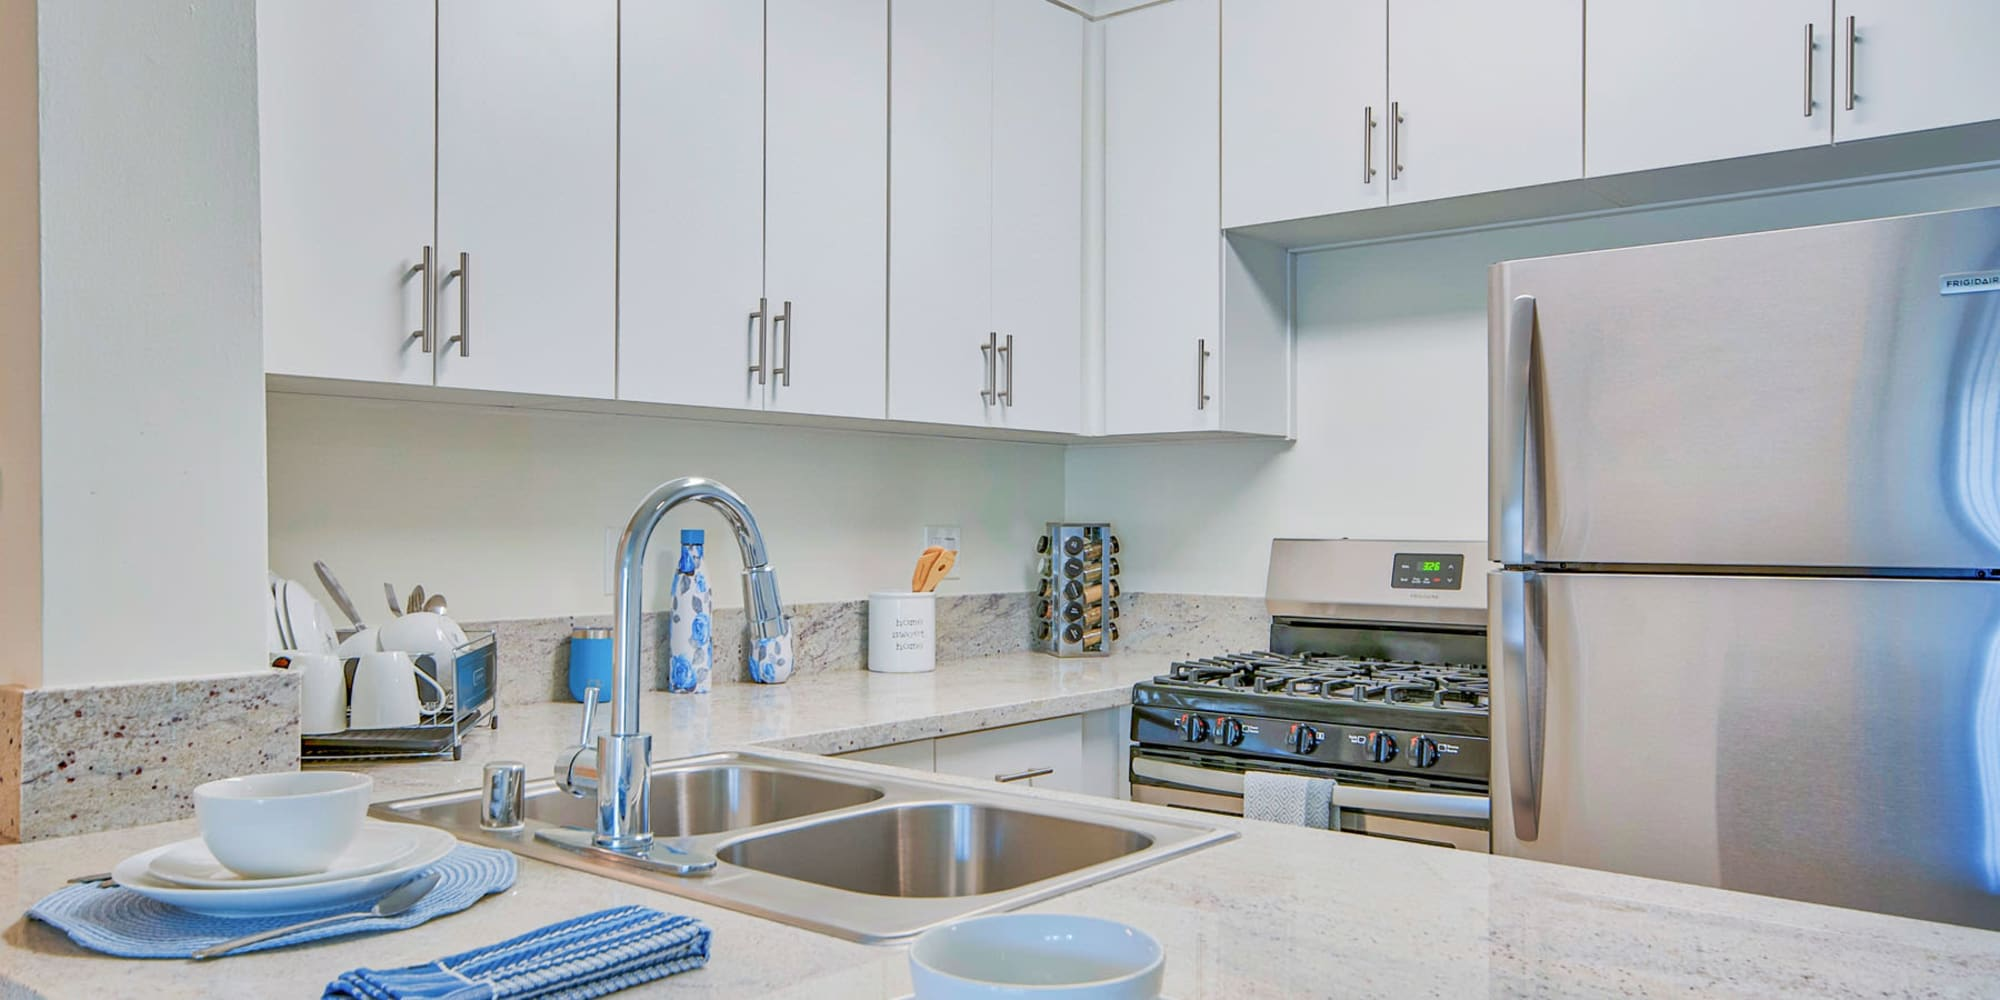 Granite countertops and a dual-basin sink in a model home's kitchen at Villa Vicente in Los Angeles, California